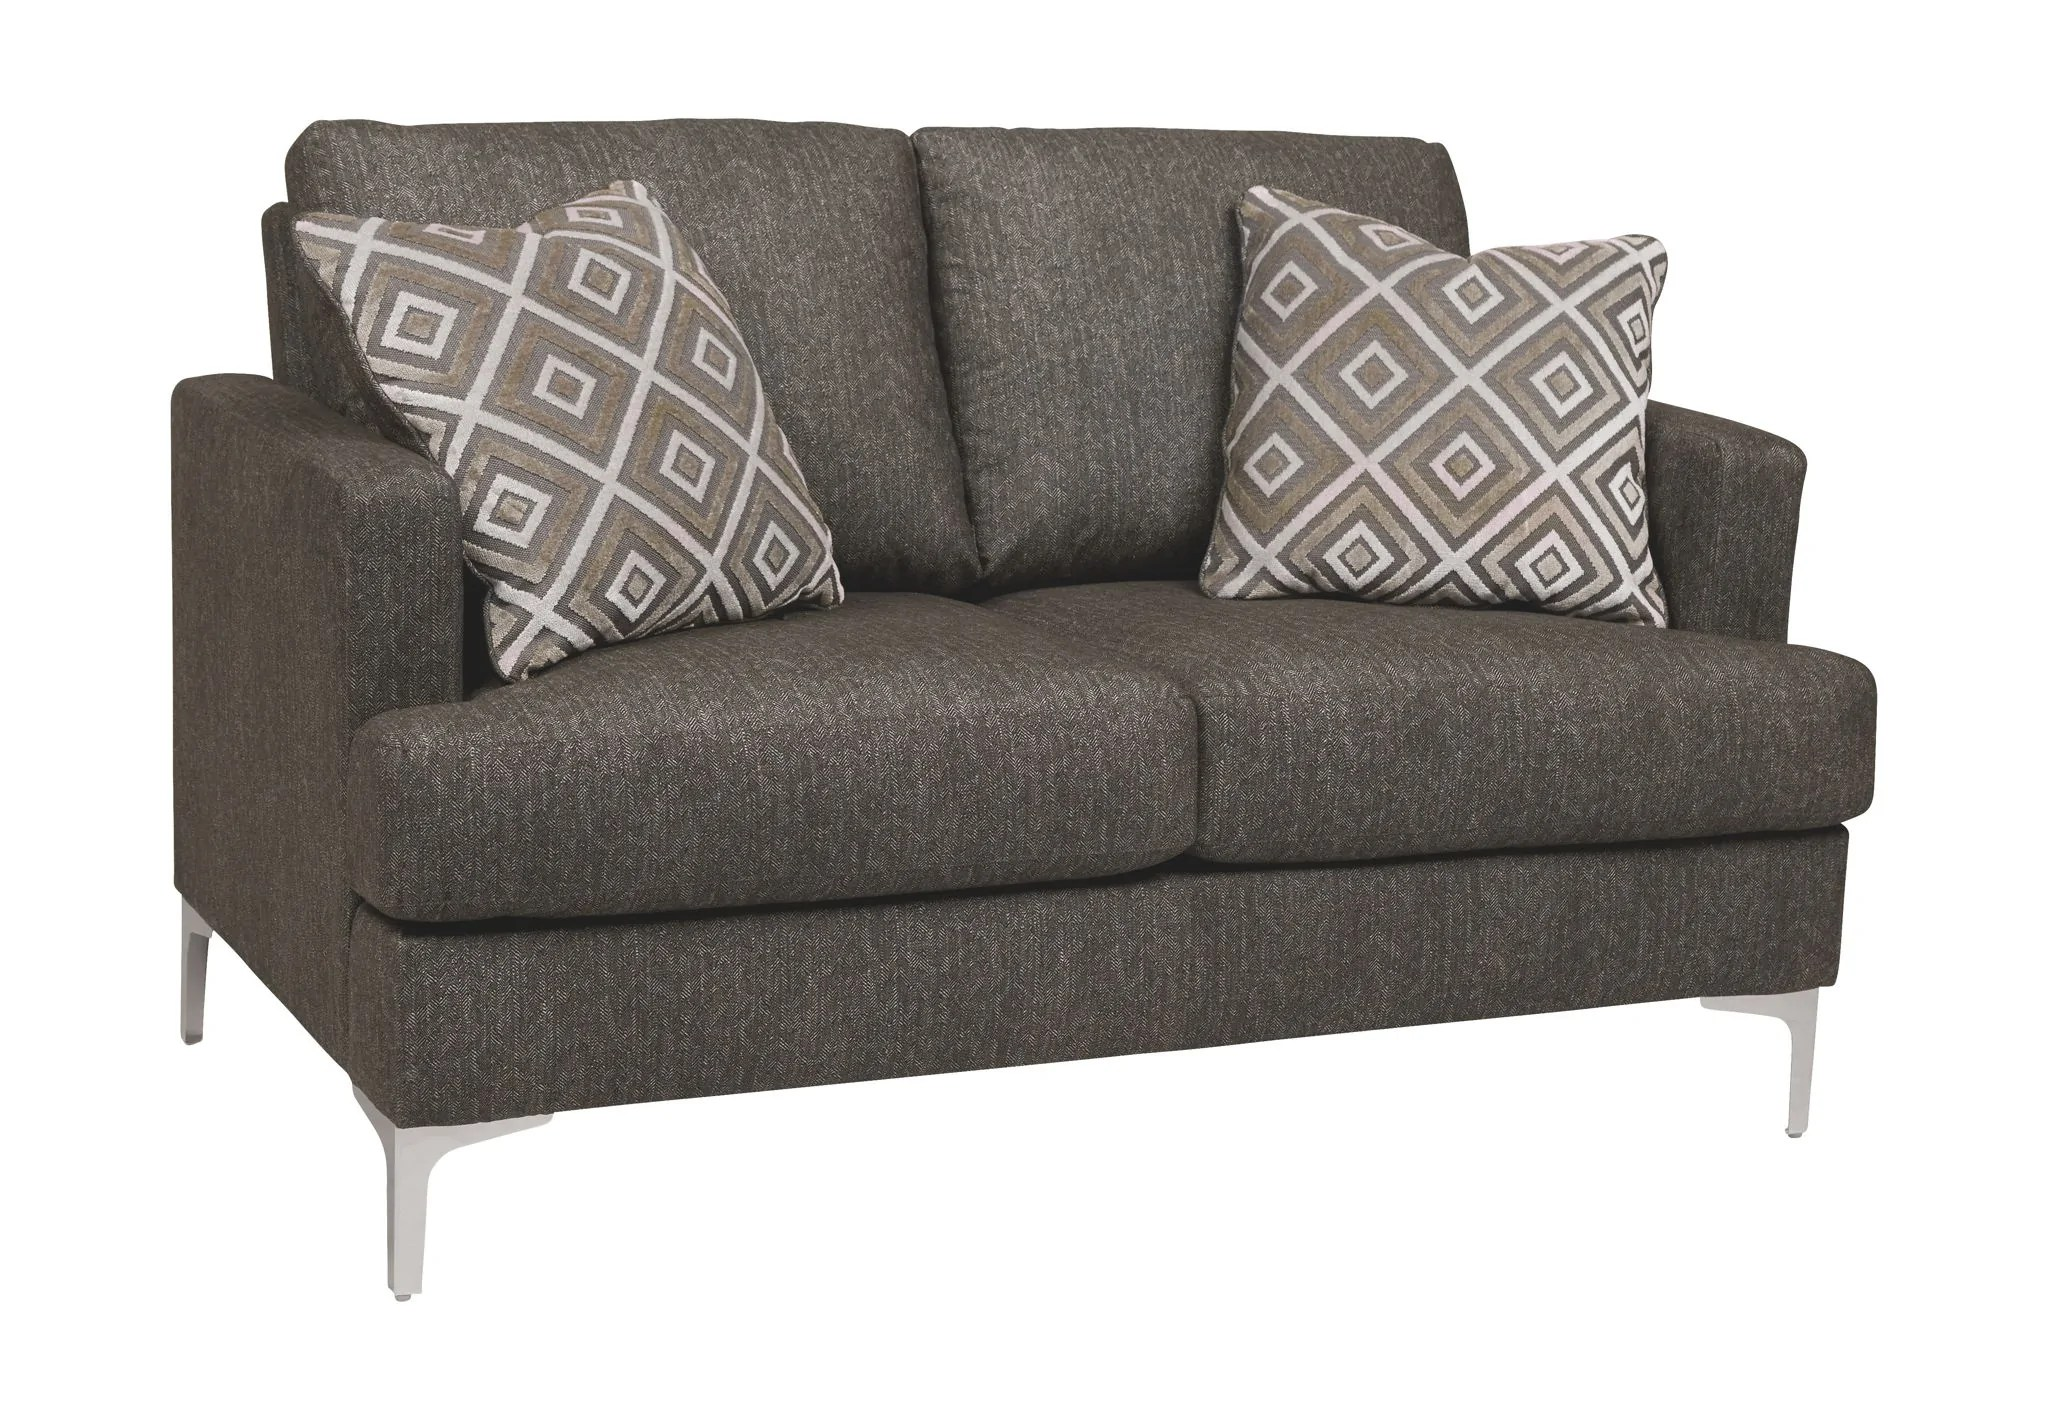 Arcola Rta Loveseat Showhome Furniture Calgary S Furniture Store